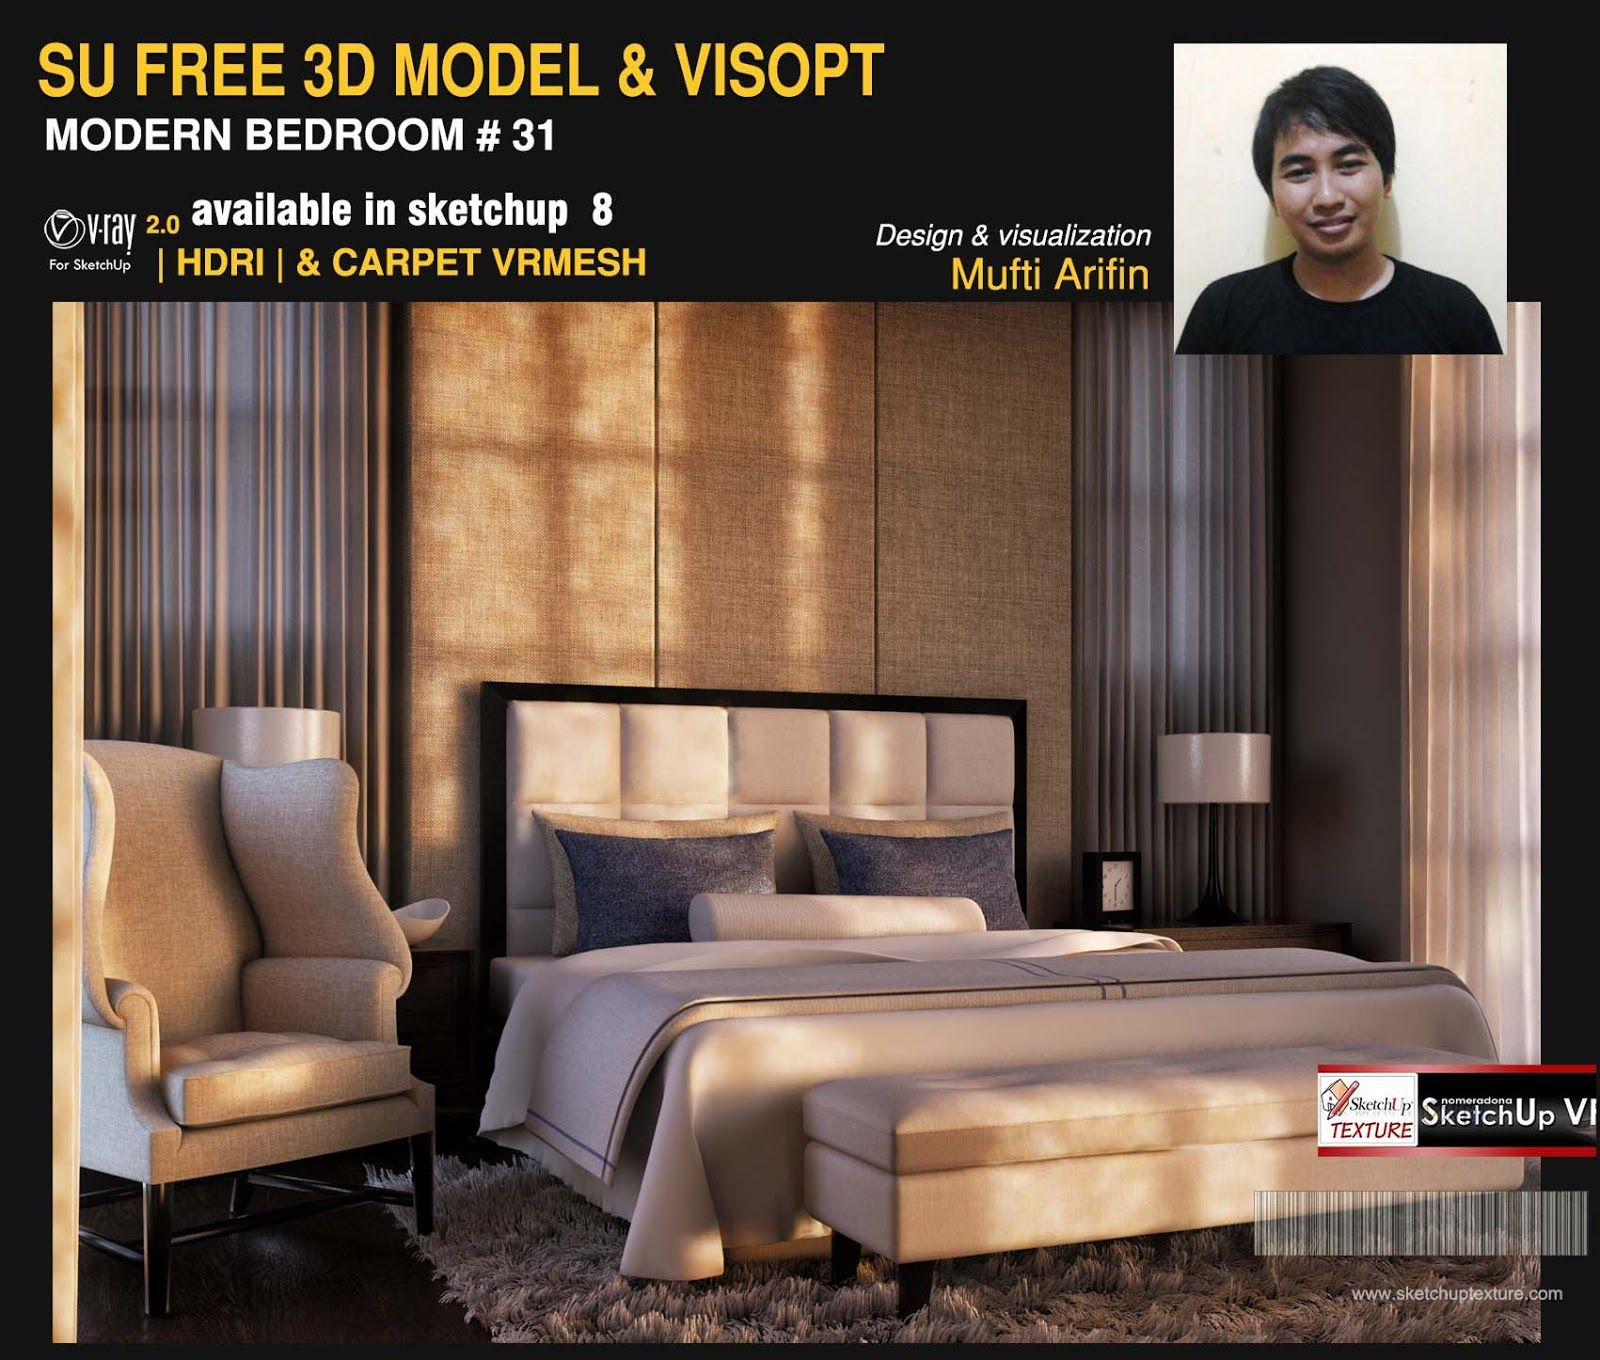 sketchup free 3d model bedroom 31 and vray visopt by Mufti ...